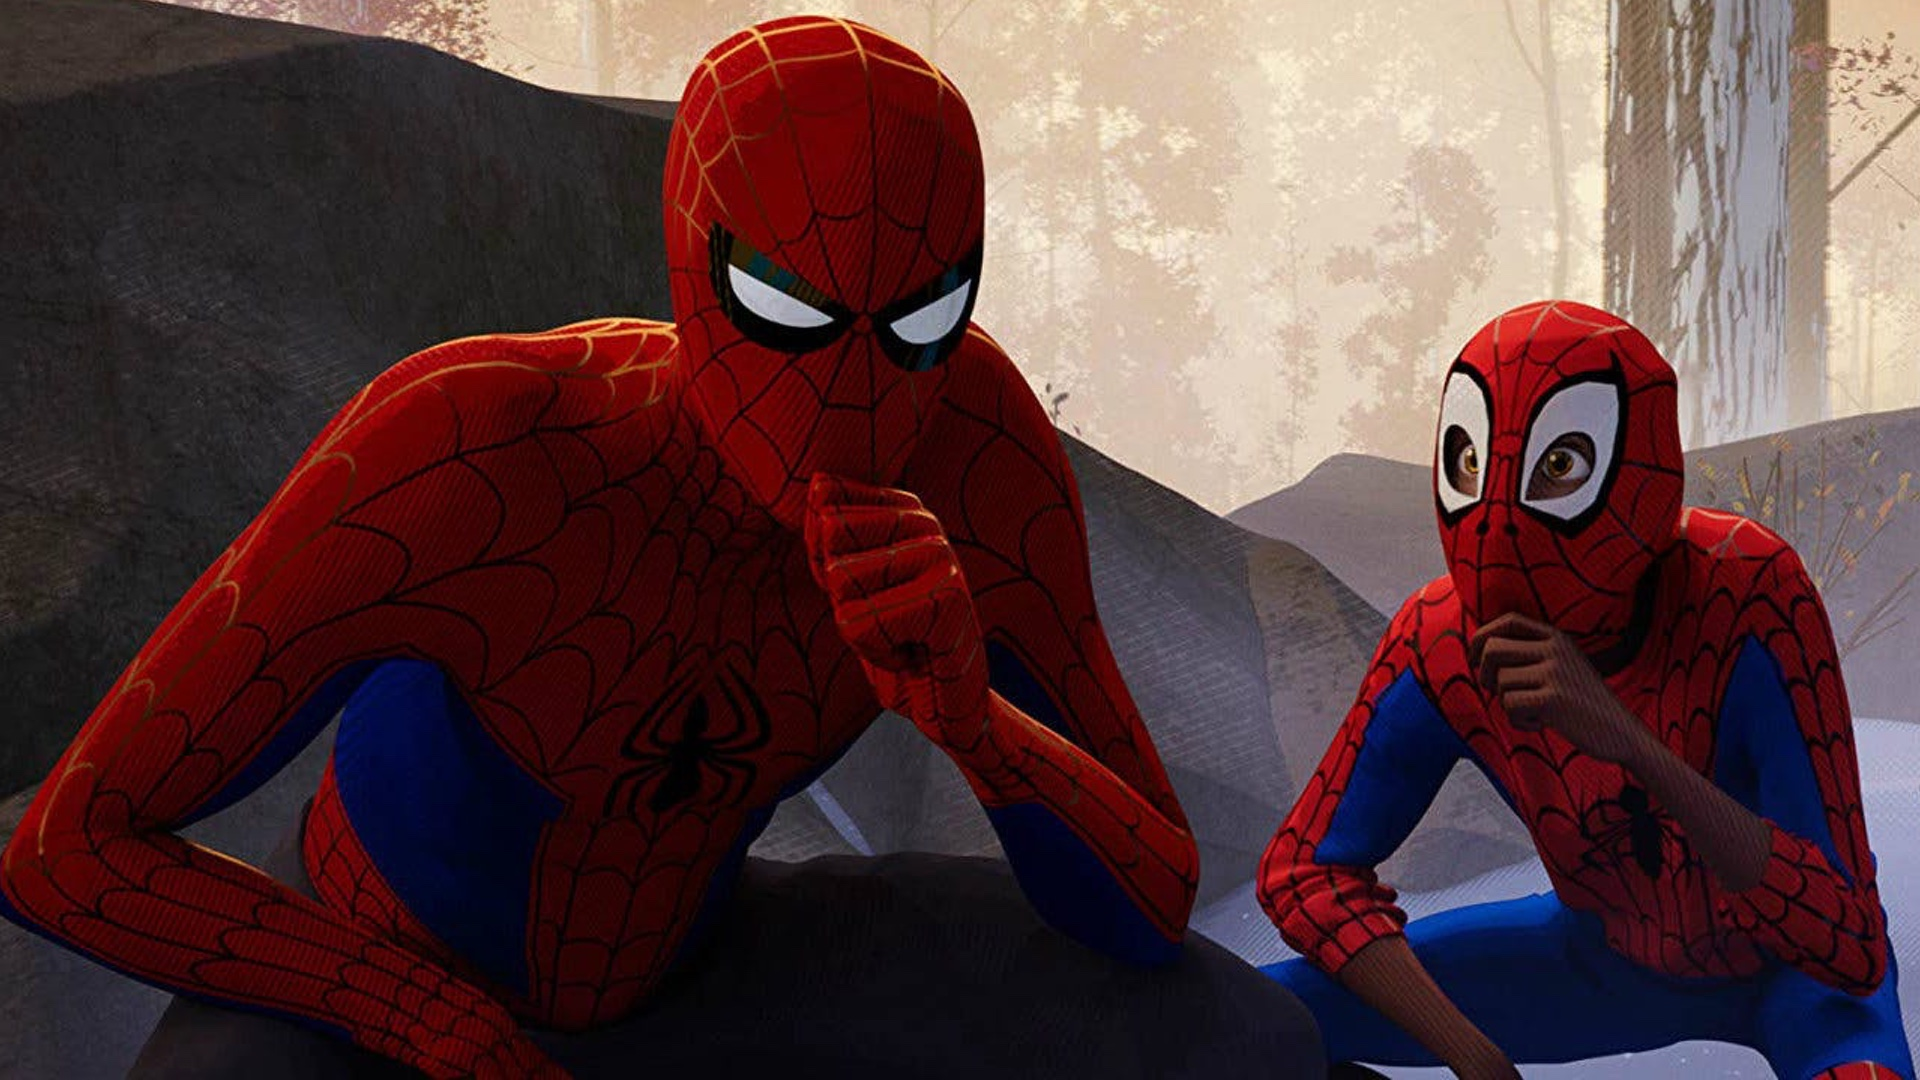 spider-man-into-the-spider-verse-almost-featured-another-popular-marvel-superhero-social.jpg